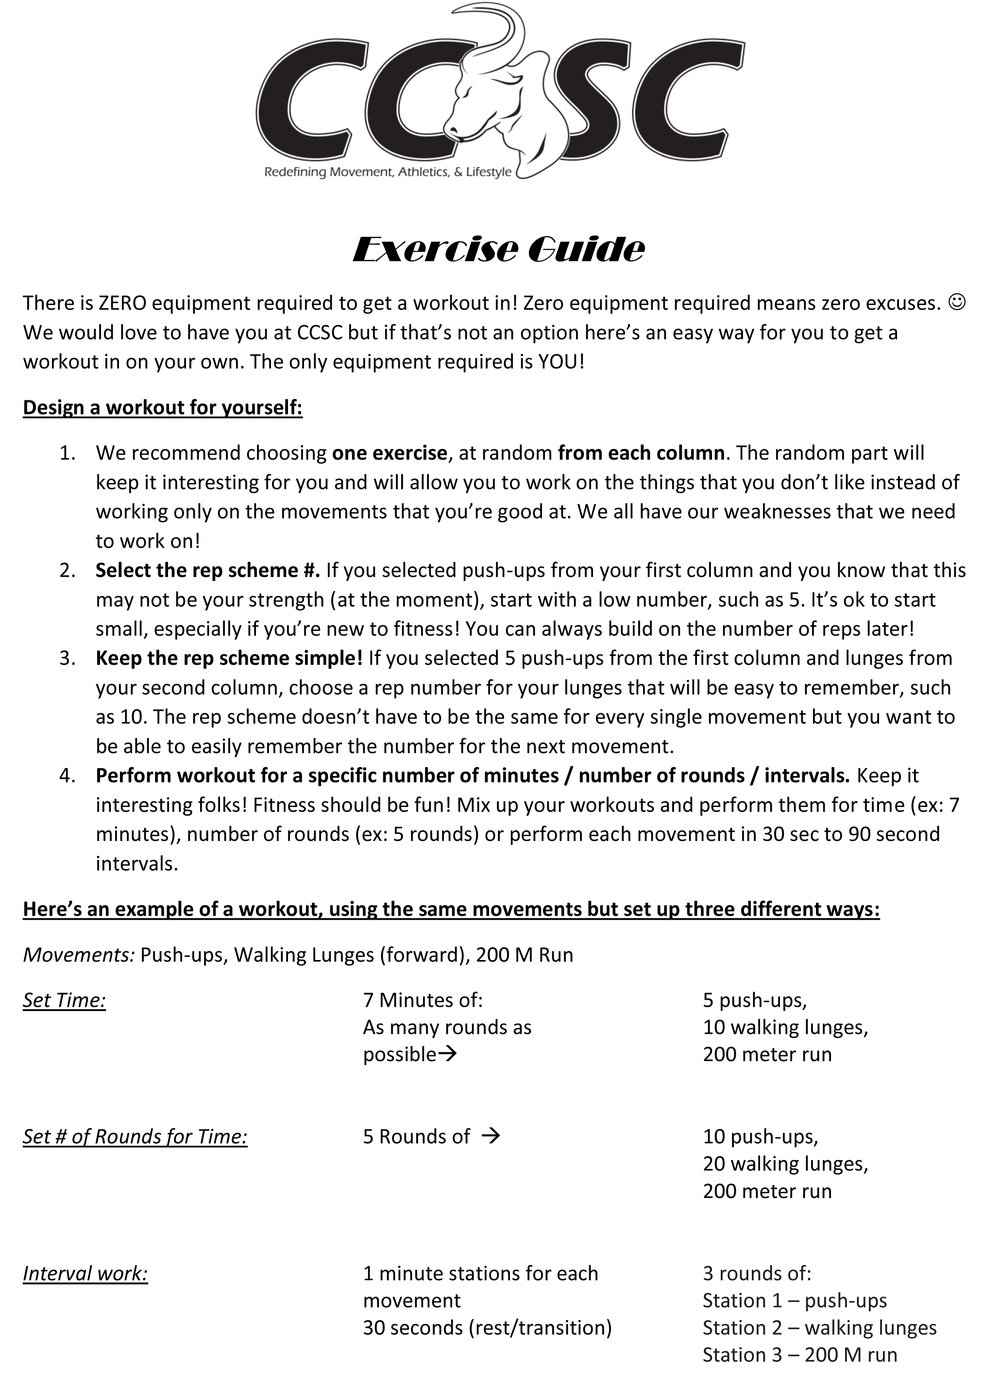 CCSC Exercise Guide-1.jpg